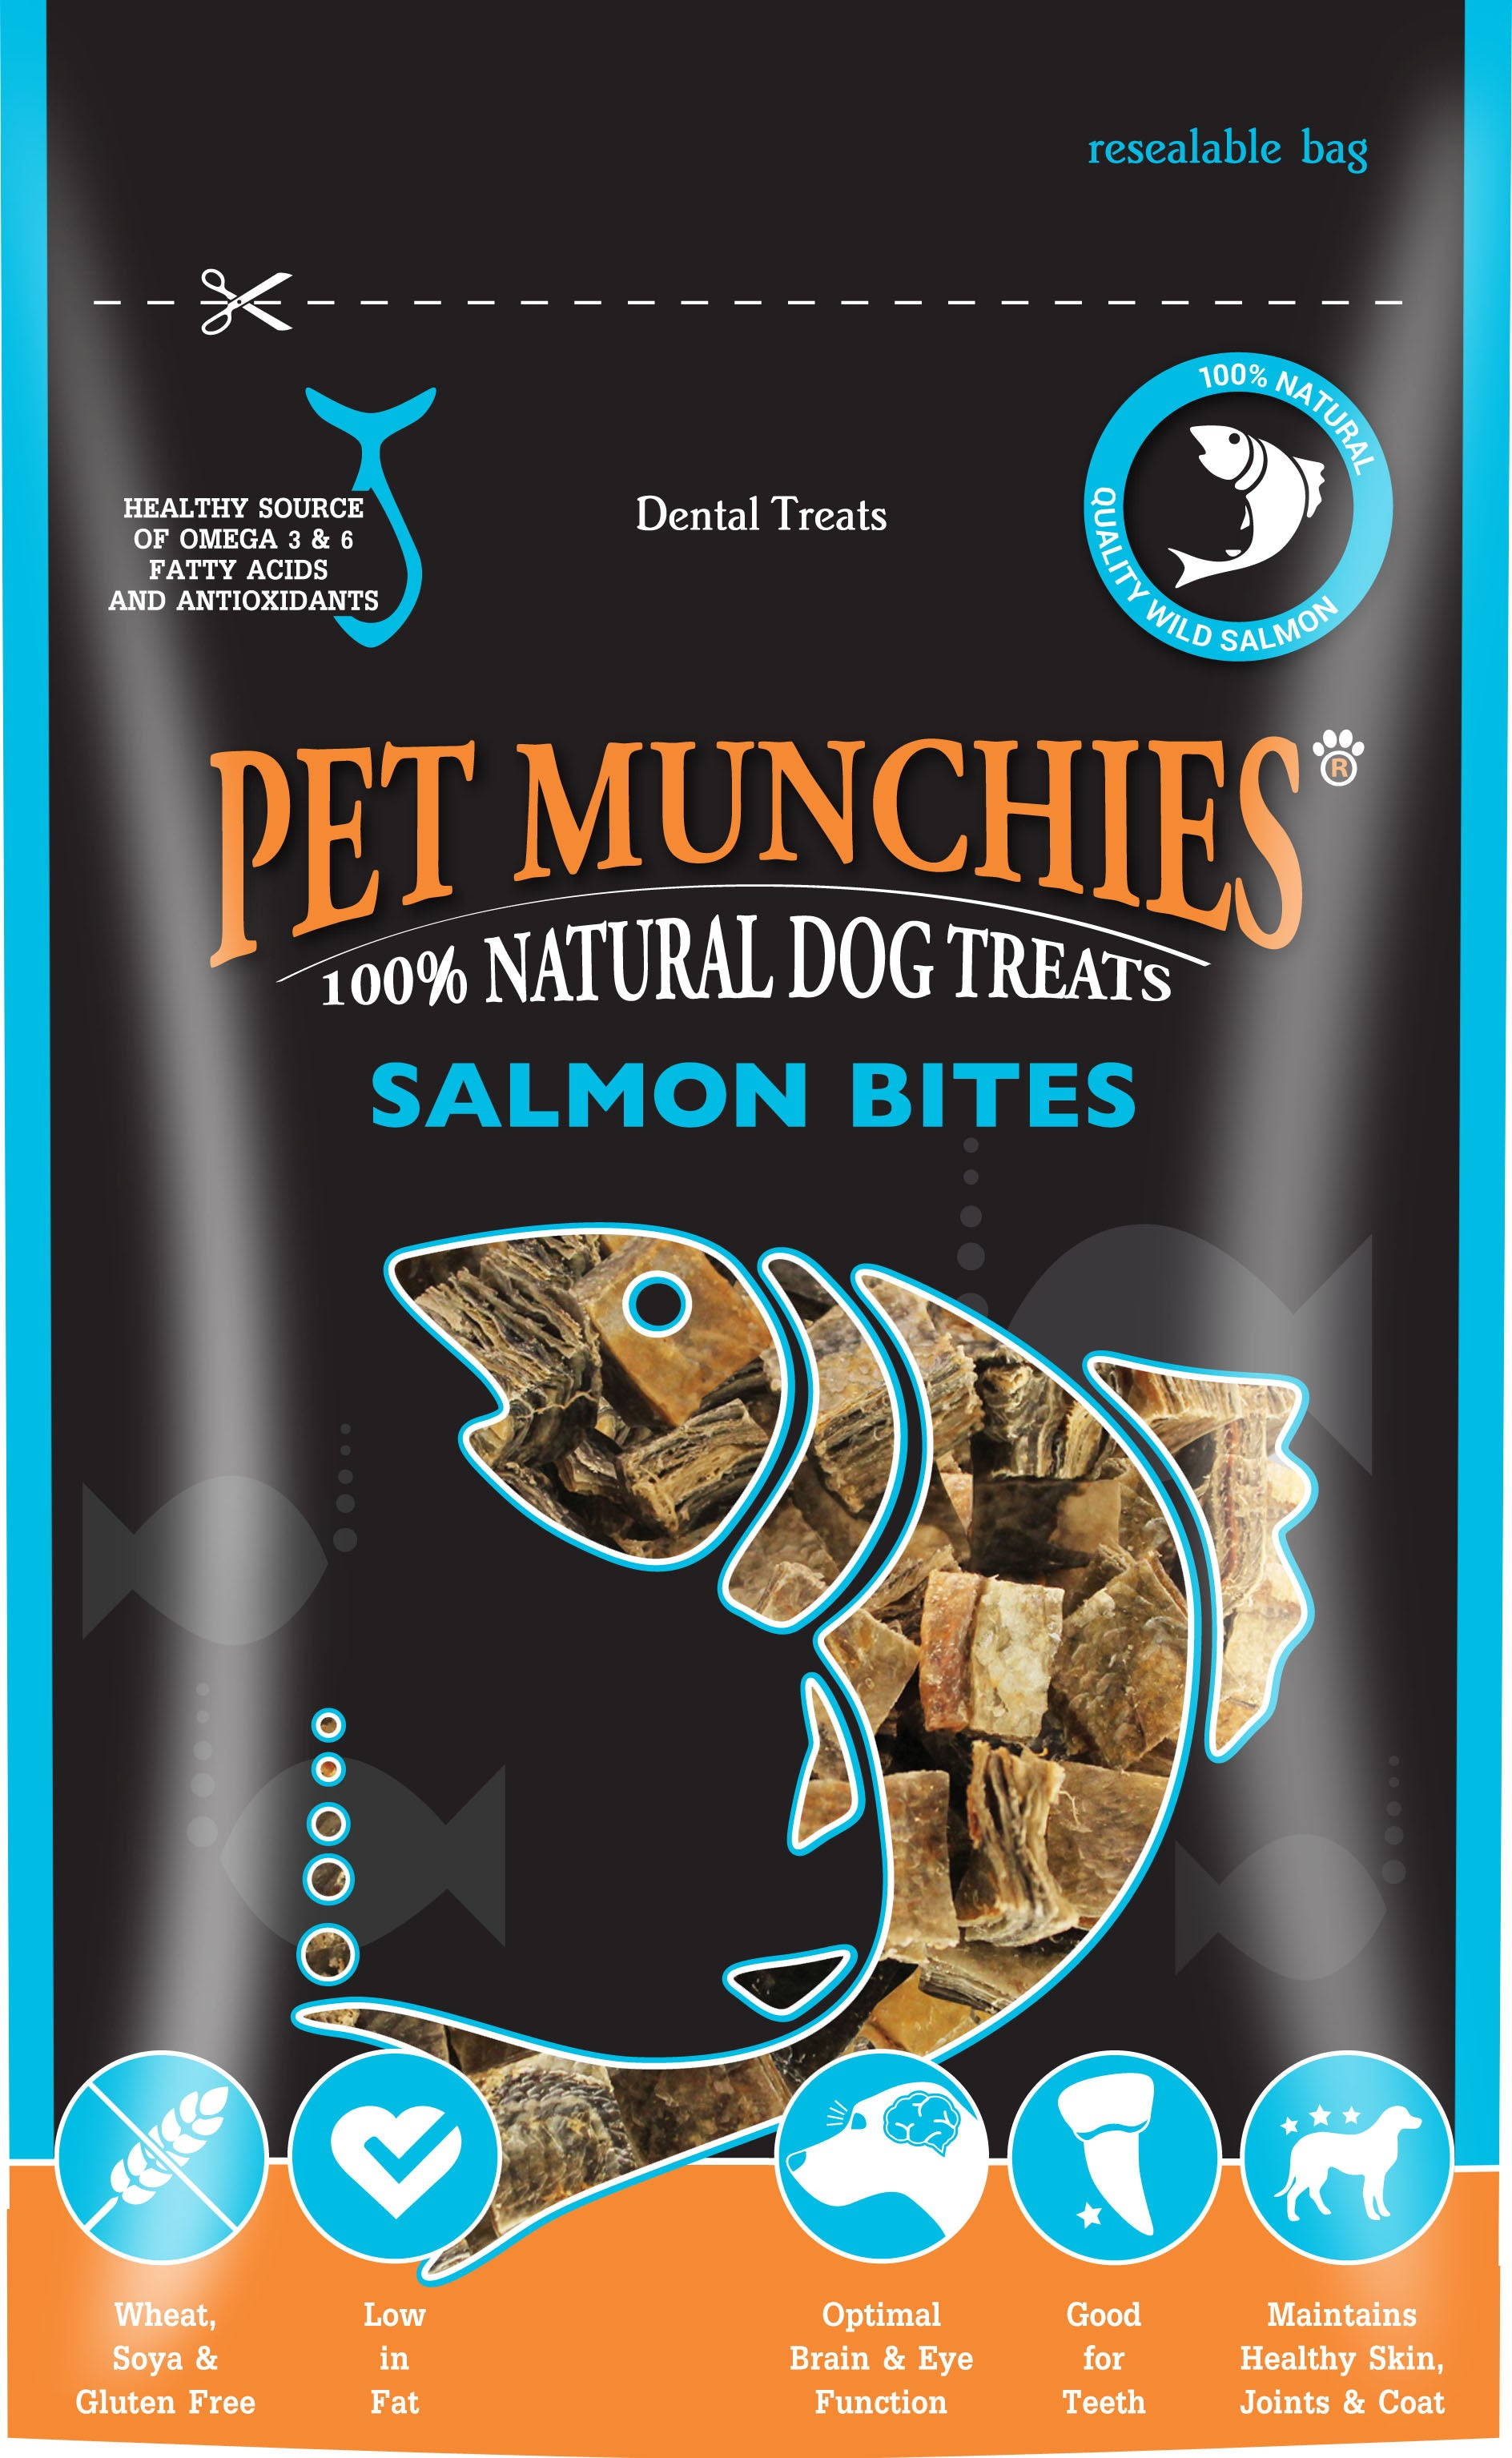 Pet Munchies 100% Natural Salmon Bites Dog Treats